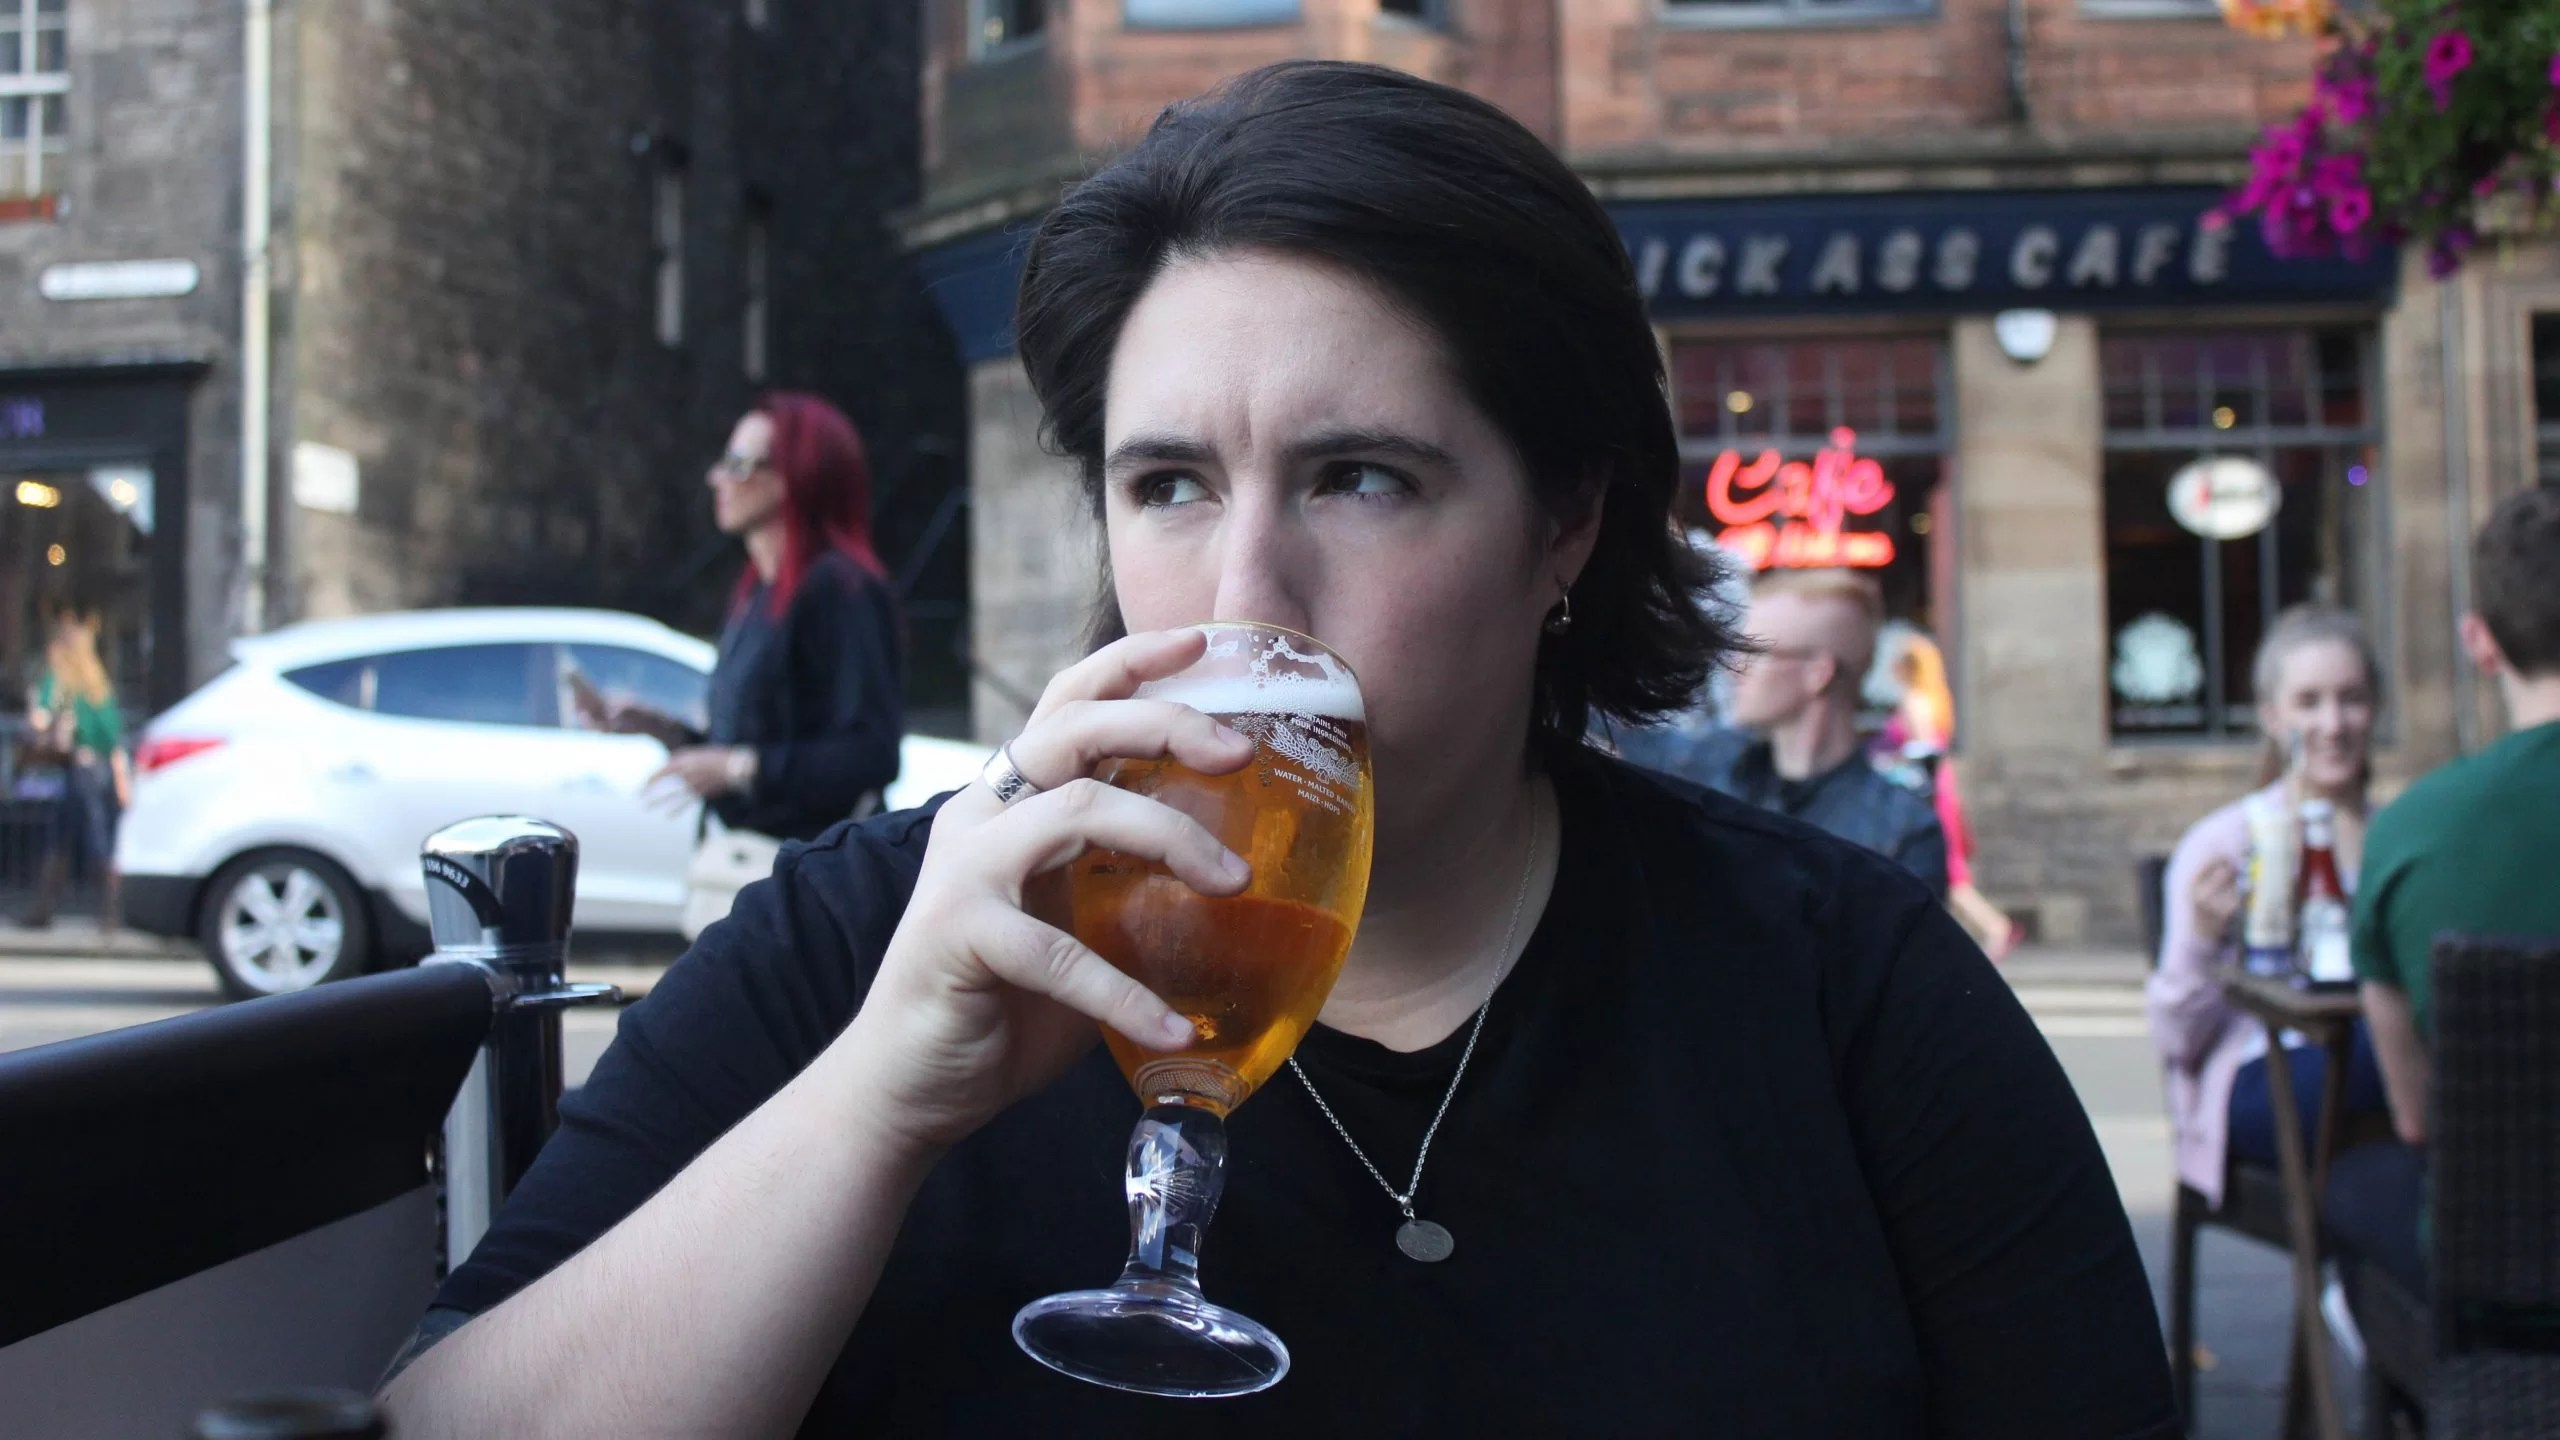 Me-in-edinburgh-drinking